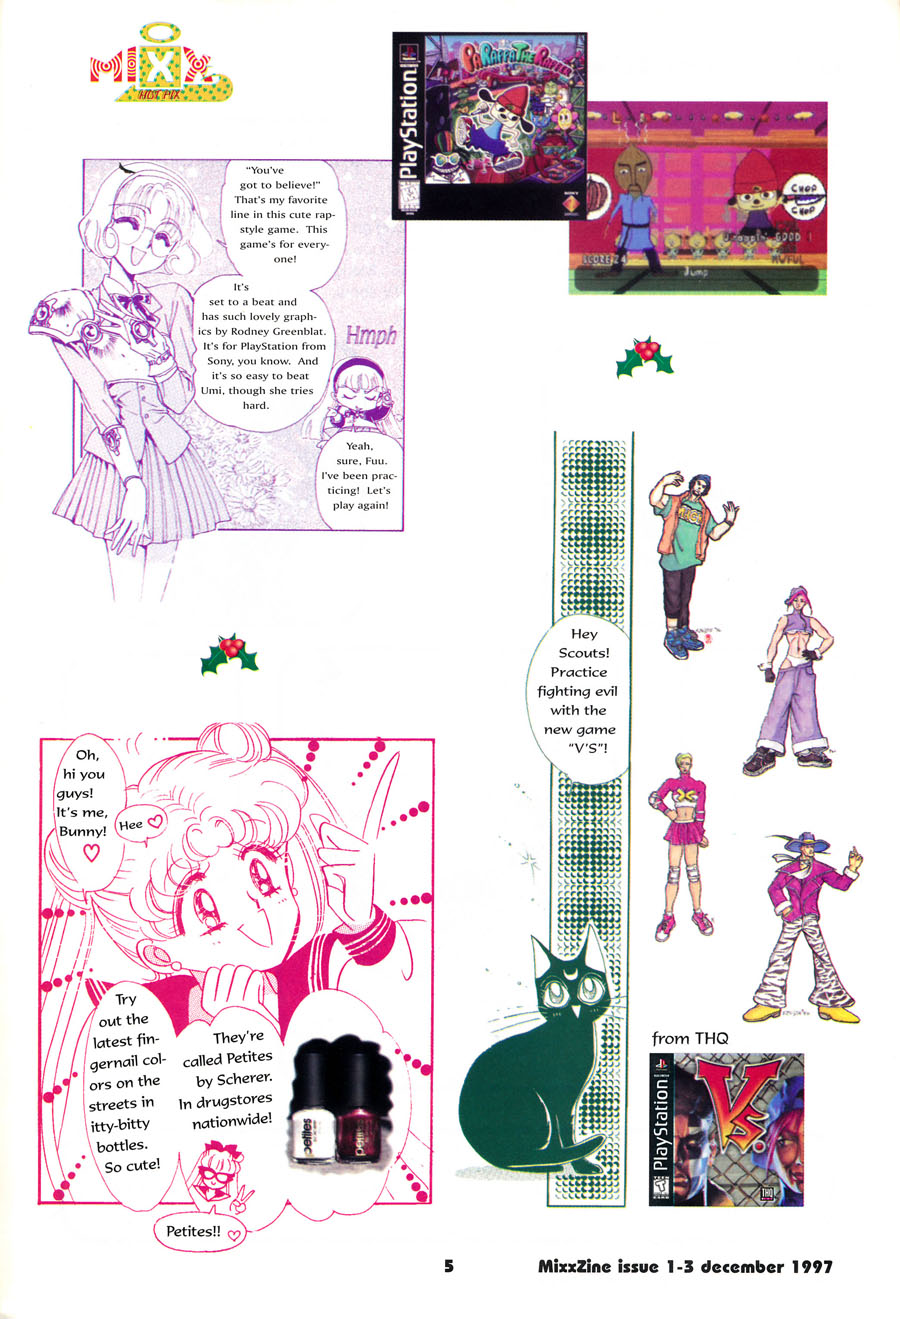 mizz-zine-sailor-moon-magic-knight-rayearth-products-Issue-3-December-1997